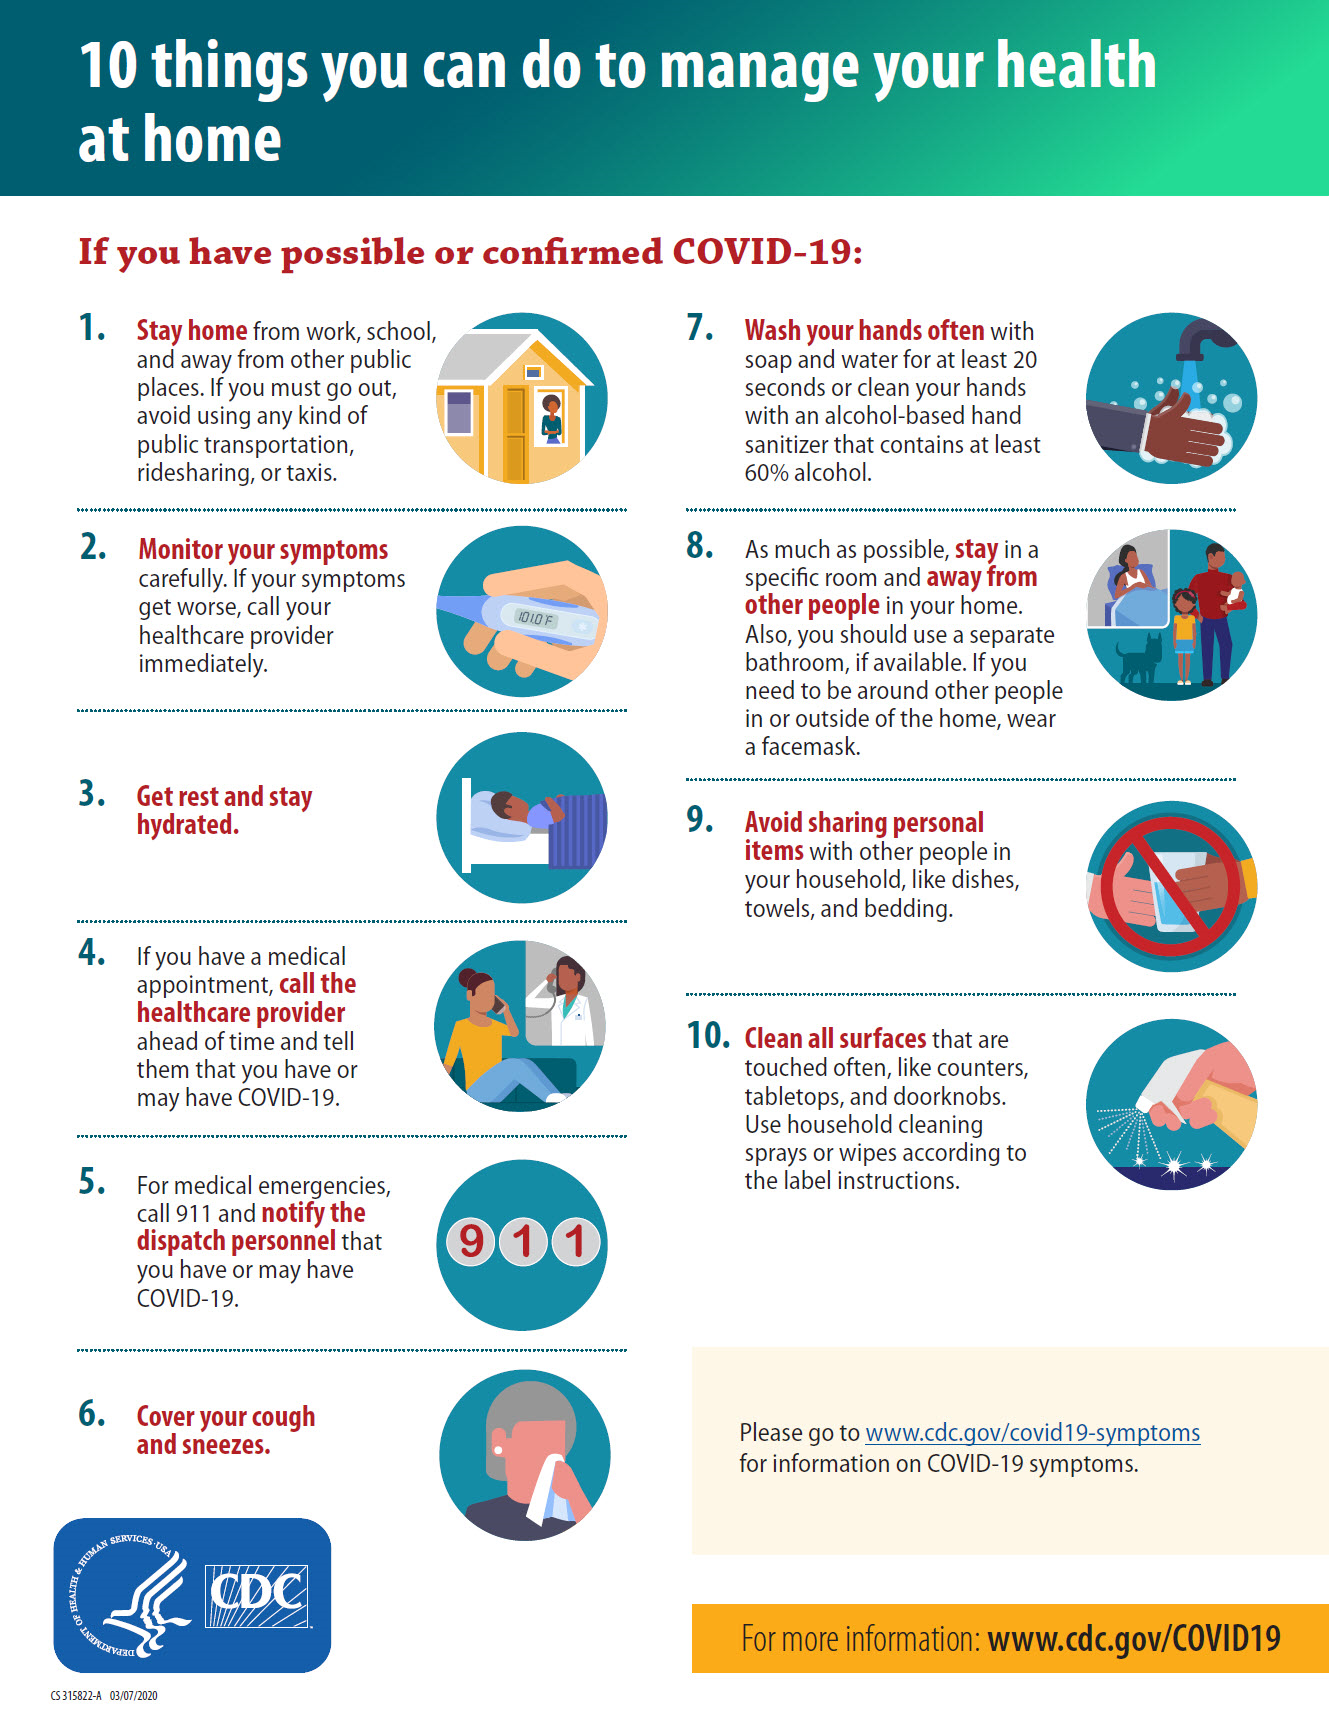 Stay healthy during the COVID-19 pandemic dos and don'ts